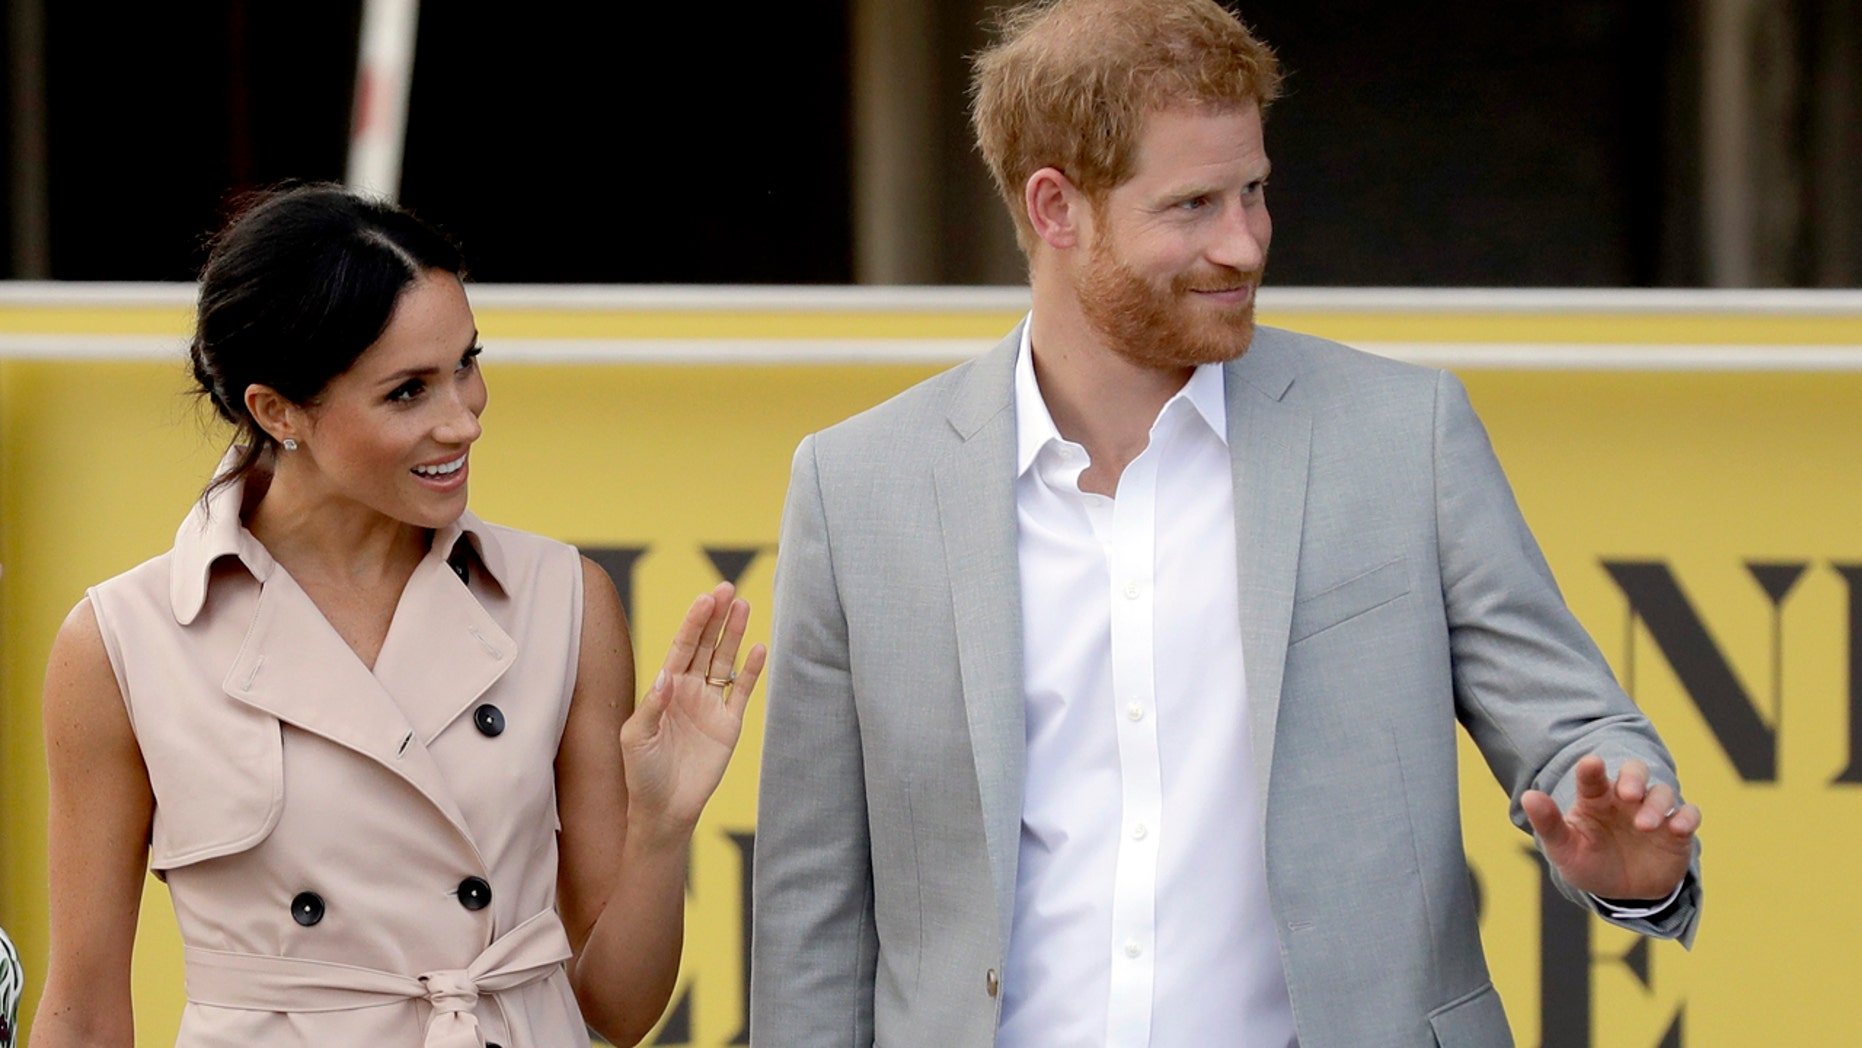 The Duke and Duchess of Sussex were snapped while pay tribute to the Nelson Mandela exhibition in London on Tuesday.